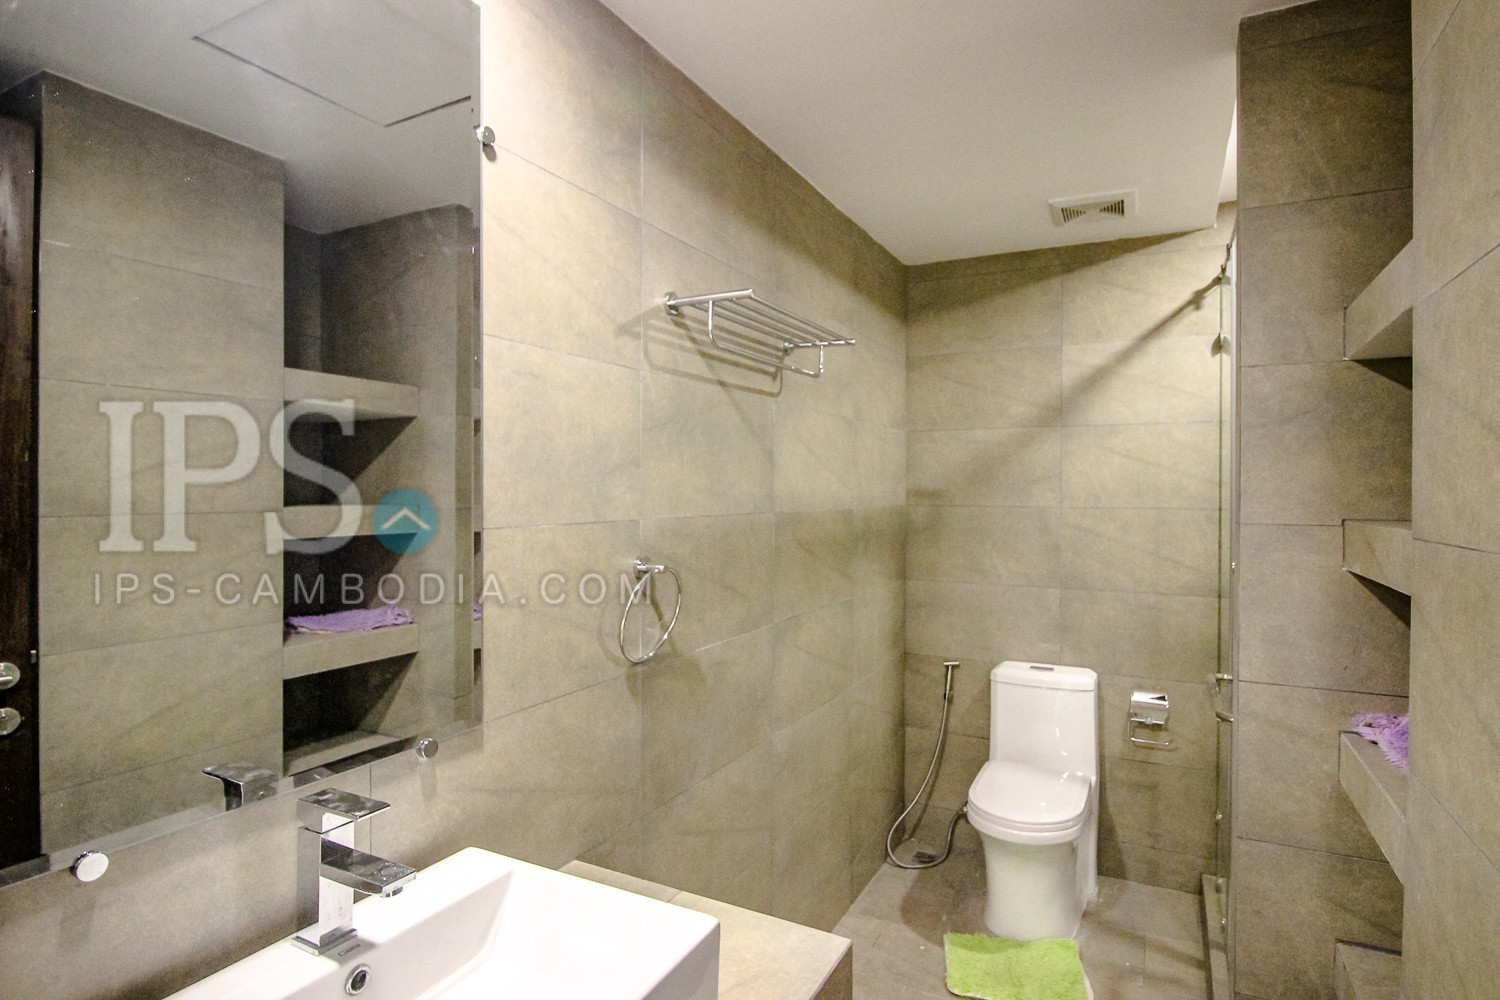 2 Bedroom Condo For Rent - Khan Meanchey, Phnom Penh